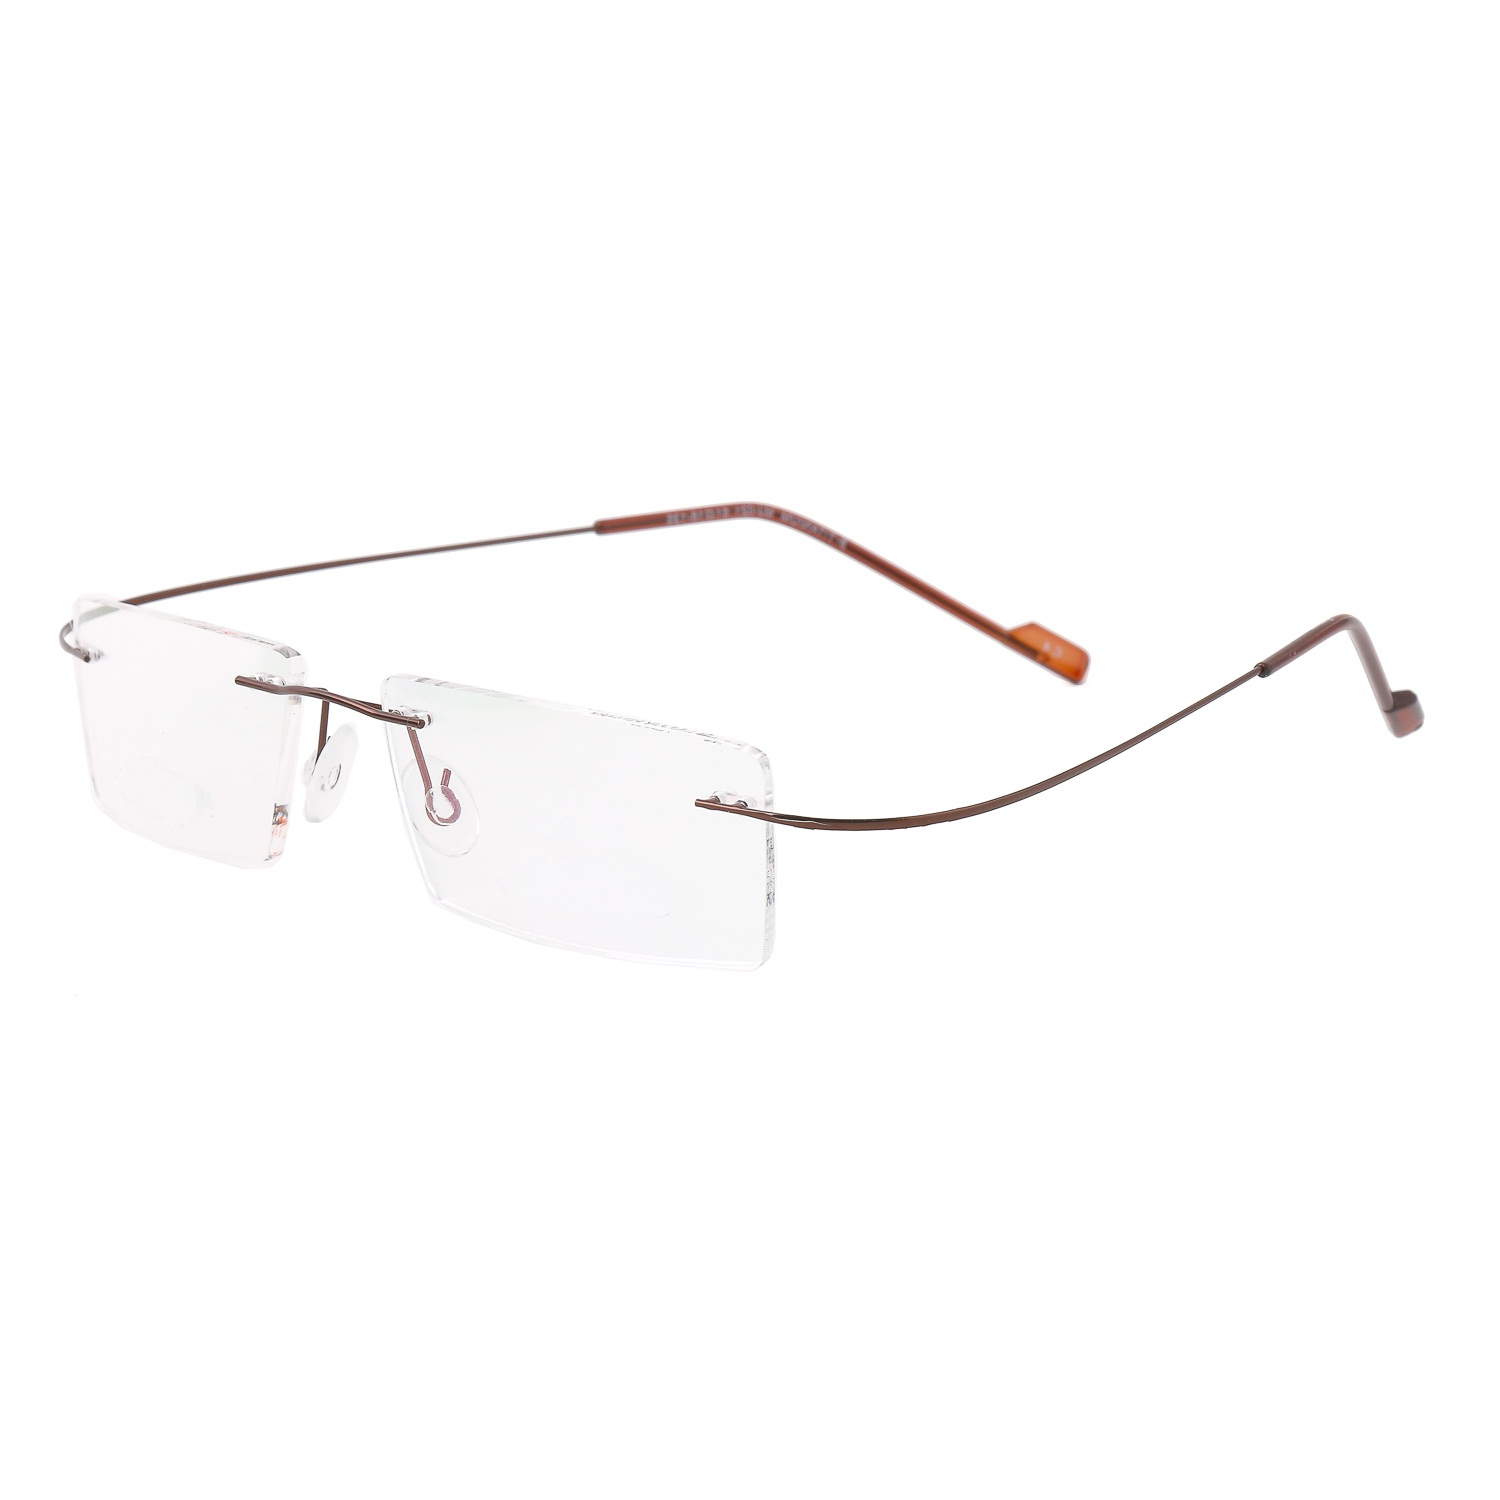 ec59400be6 Royal Son Rim Less Rectangle Spectacle Frame For Men and Women ...